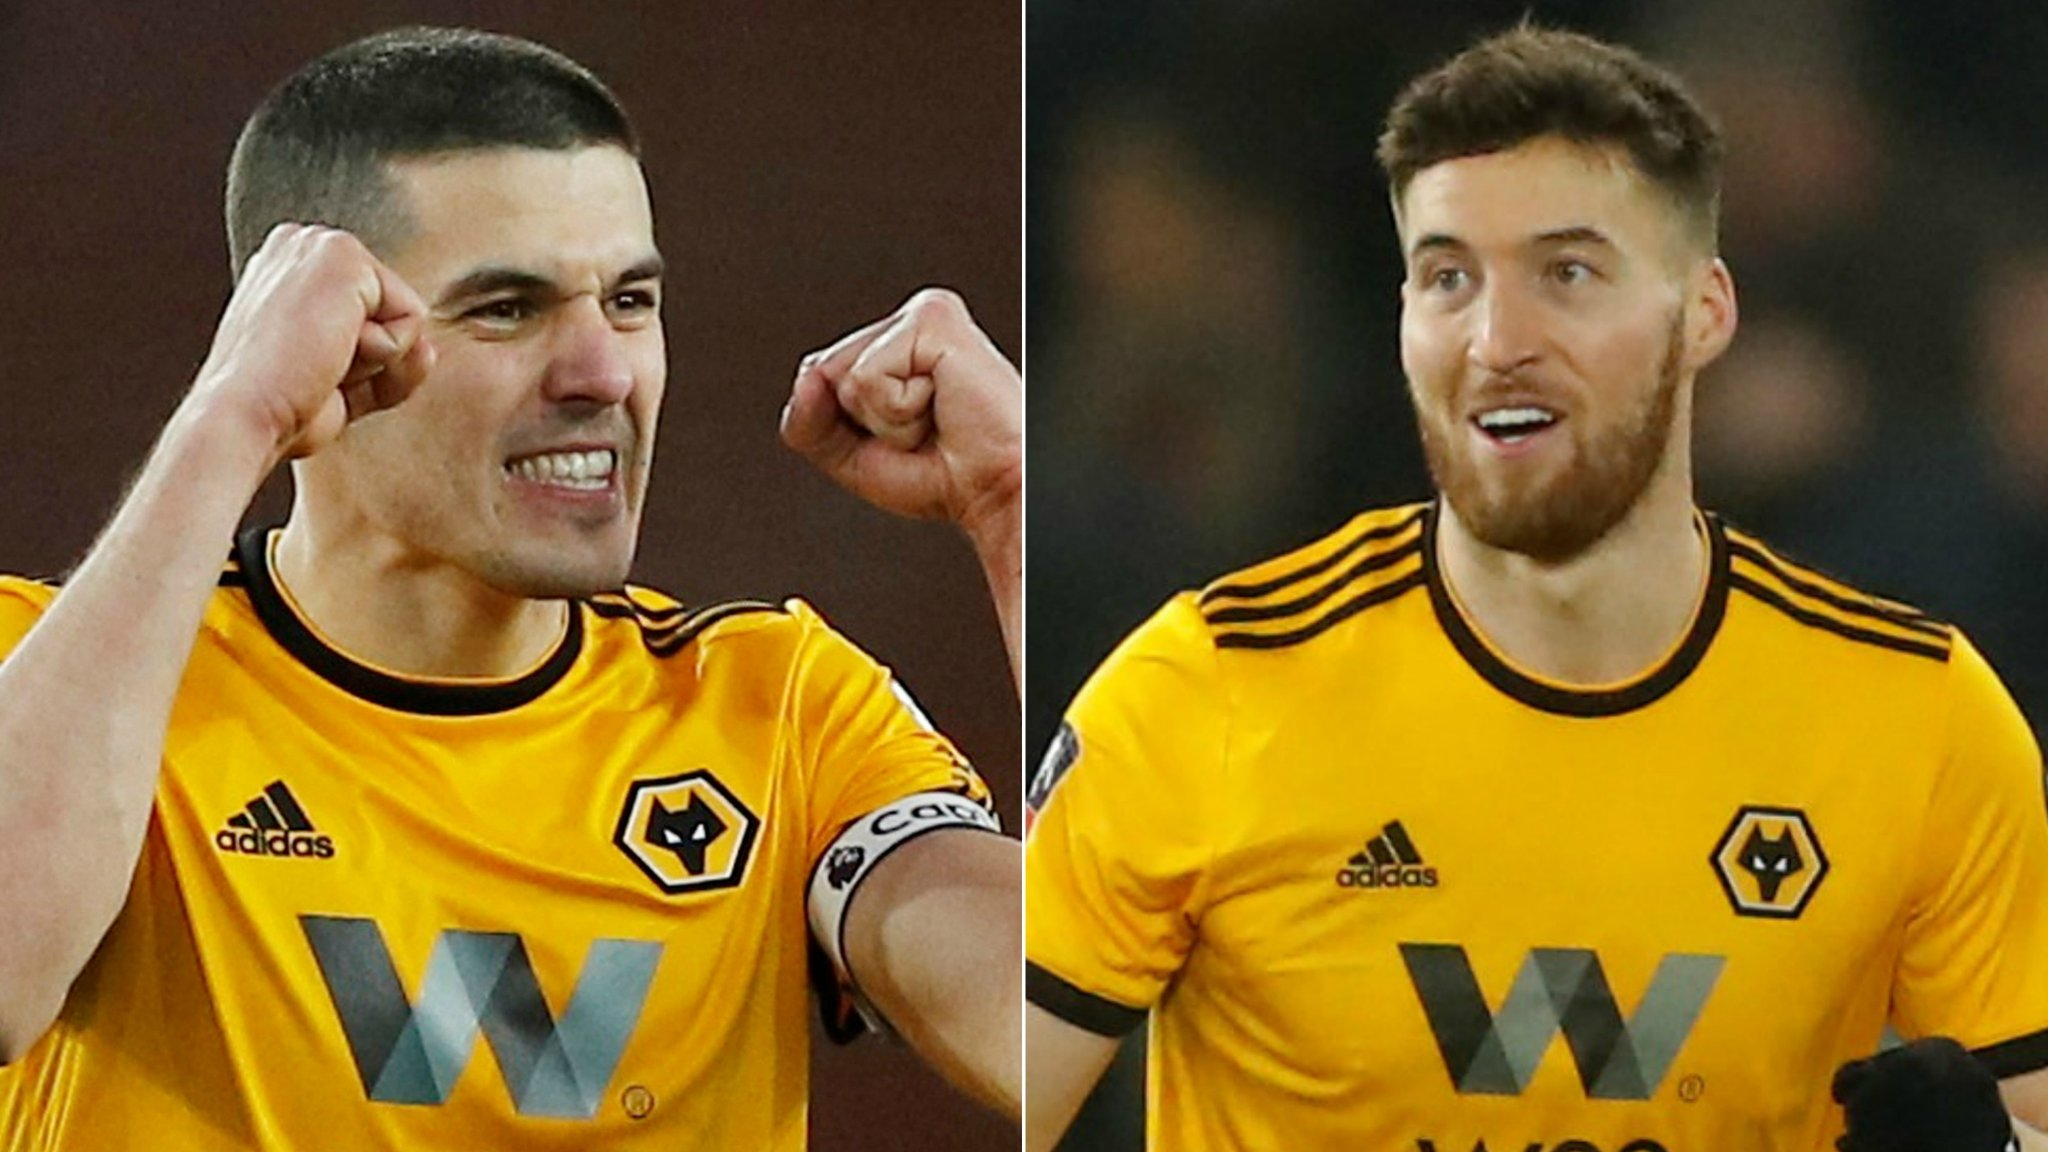 Wolves: Conor Coady and Matt Doherty sign new deals until 2023